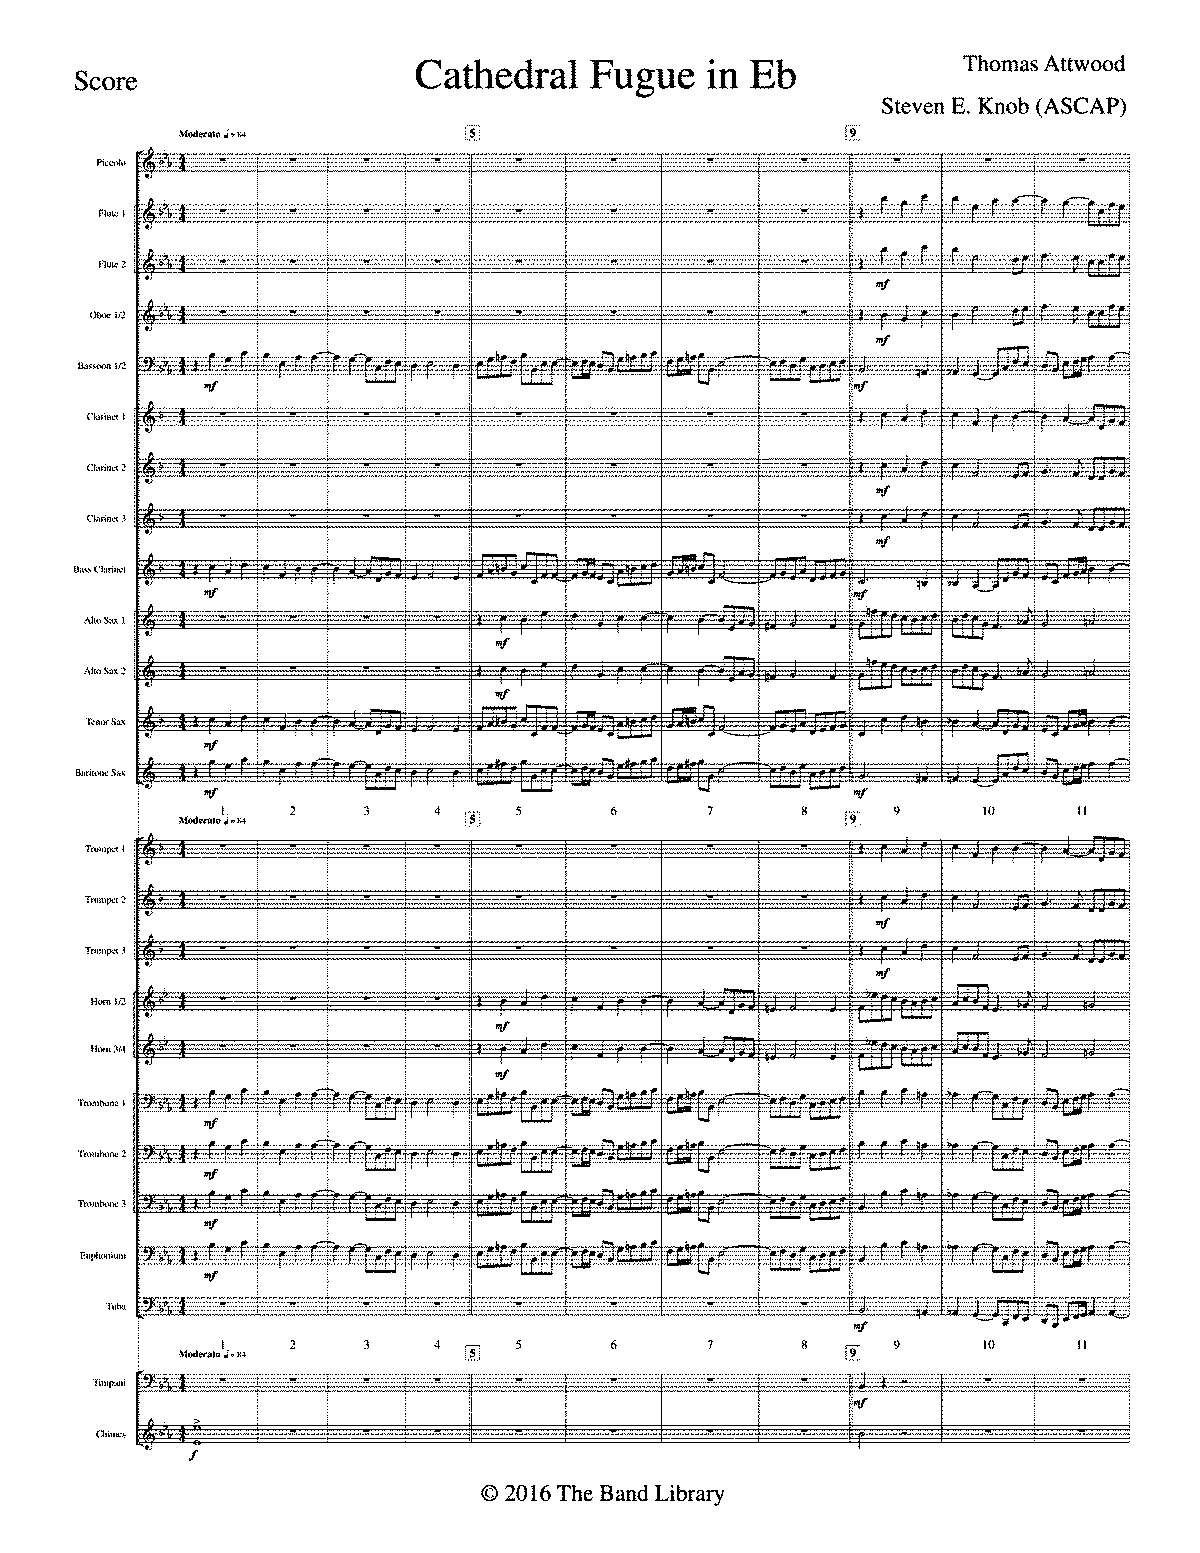 PMLP198460-Cathedral Fugue in Eb-Attwood.pdf